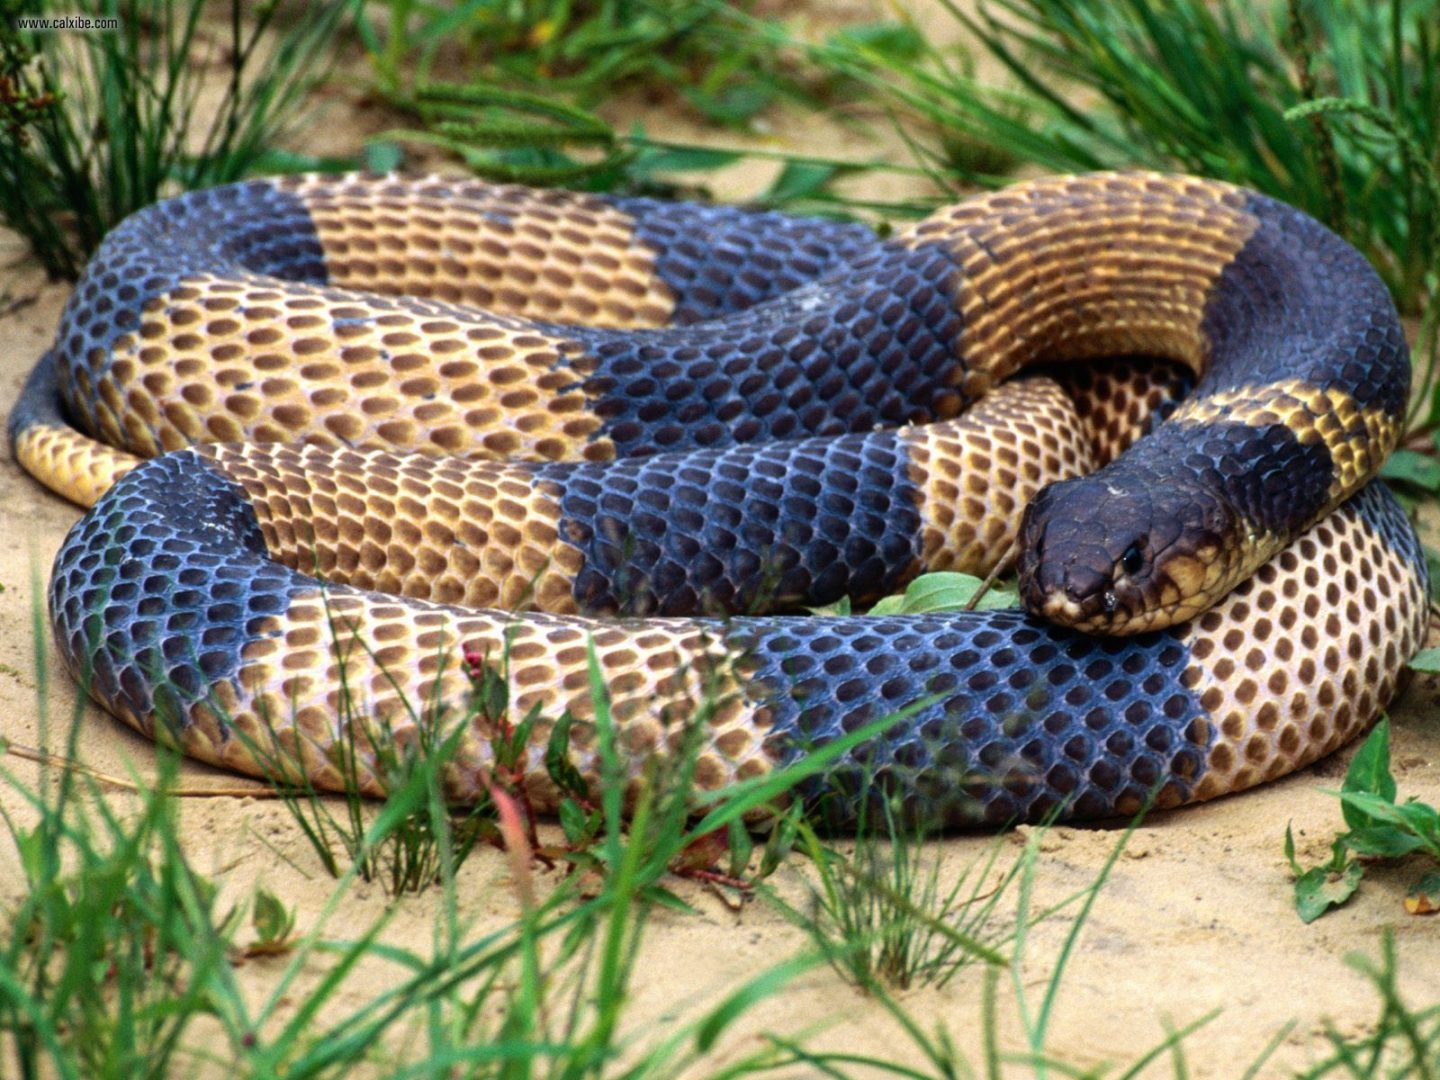 Serpiente king cobra